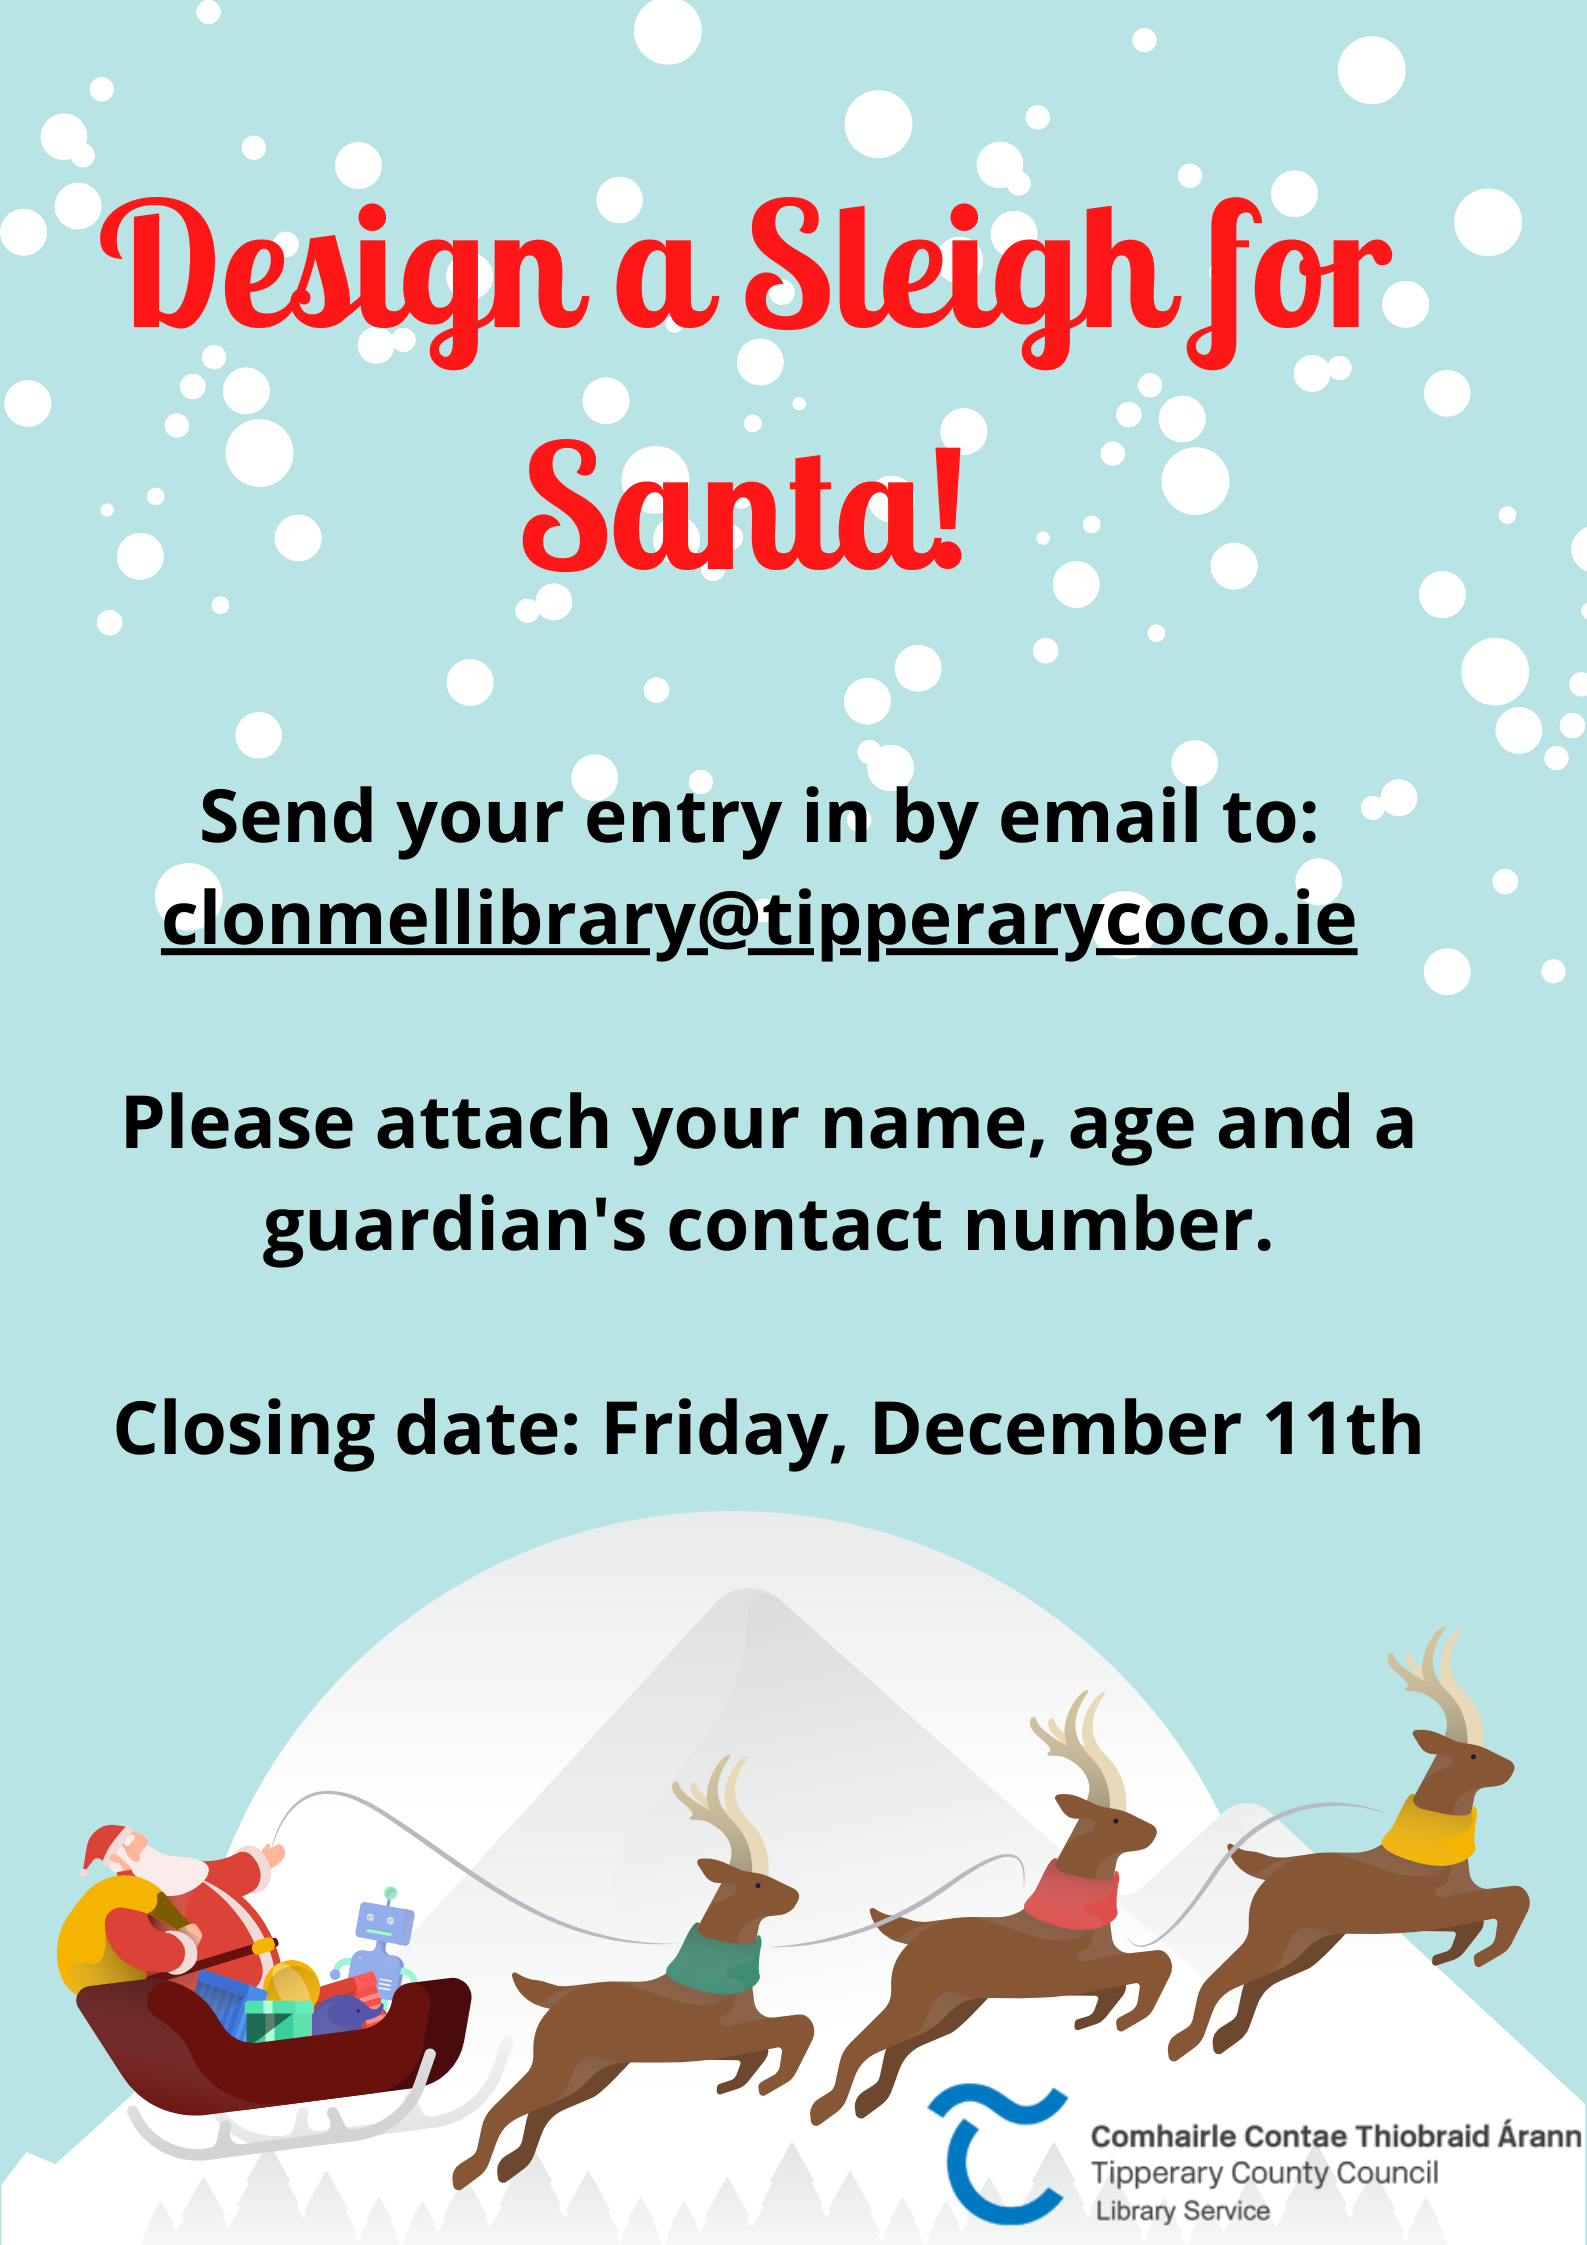 Design A Sleigh for Santa (Art Competition)